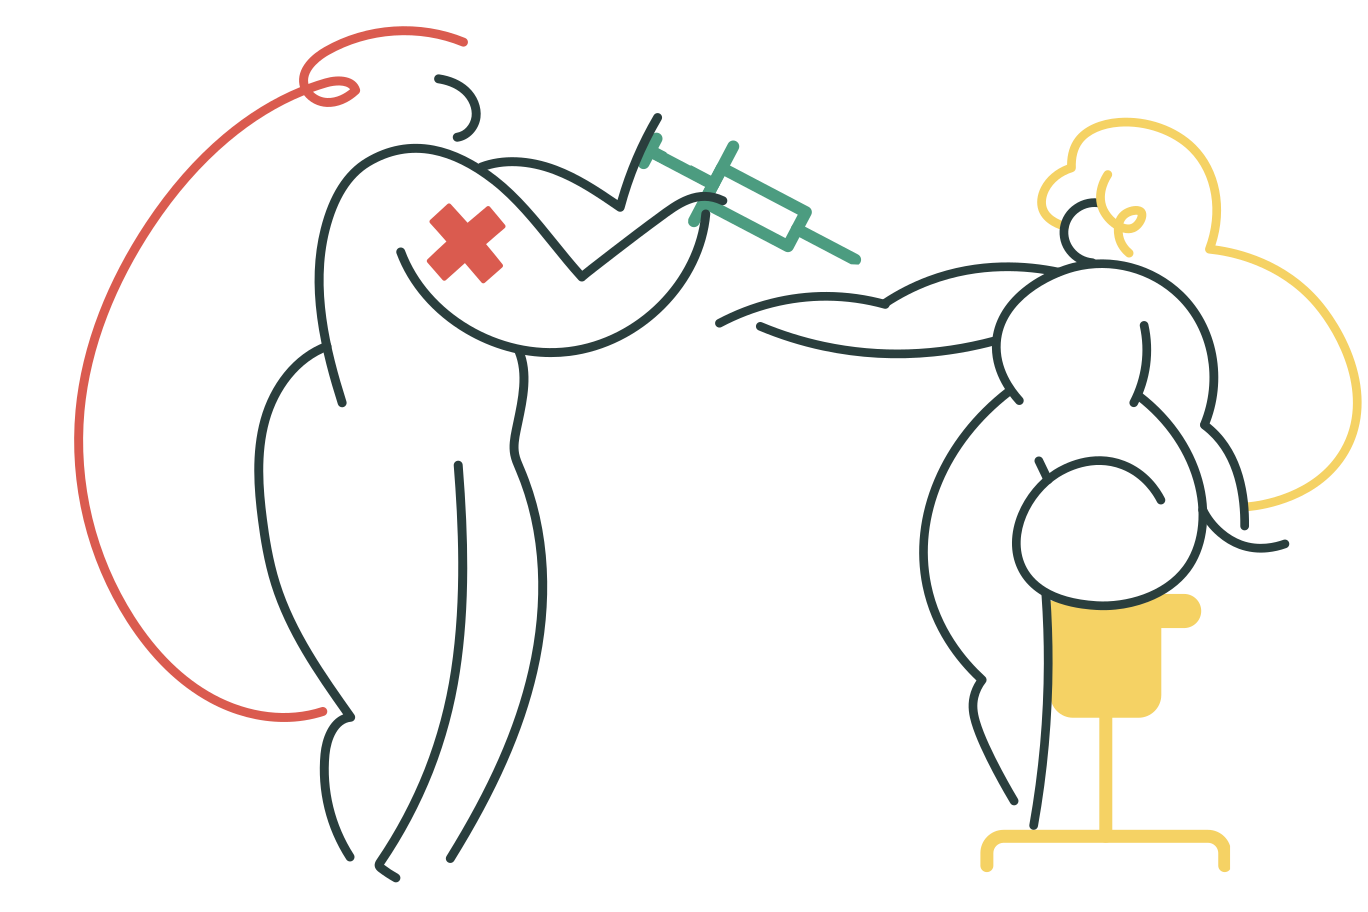 style Vaccination Vector images in PNG and SVG   Icons8 Illustrations